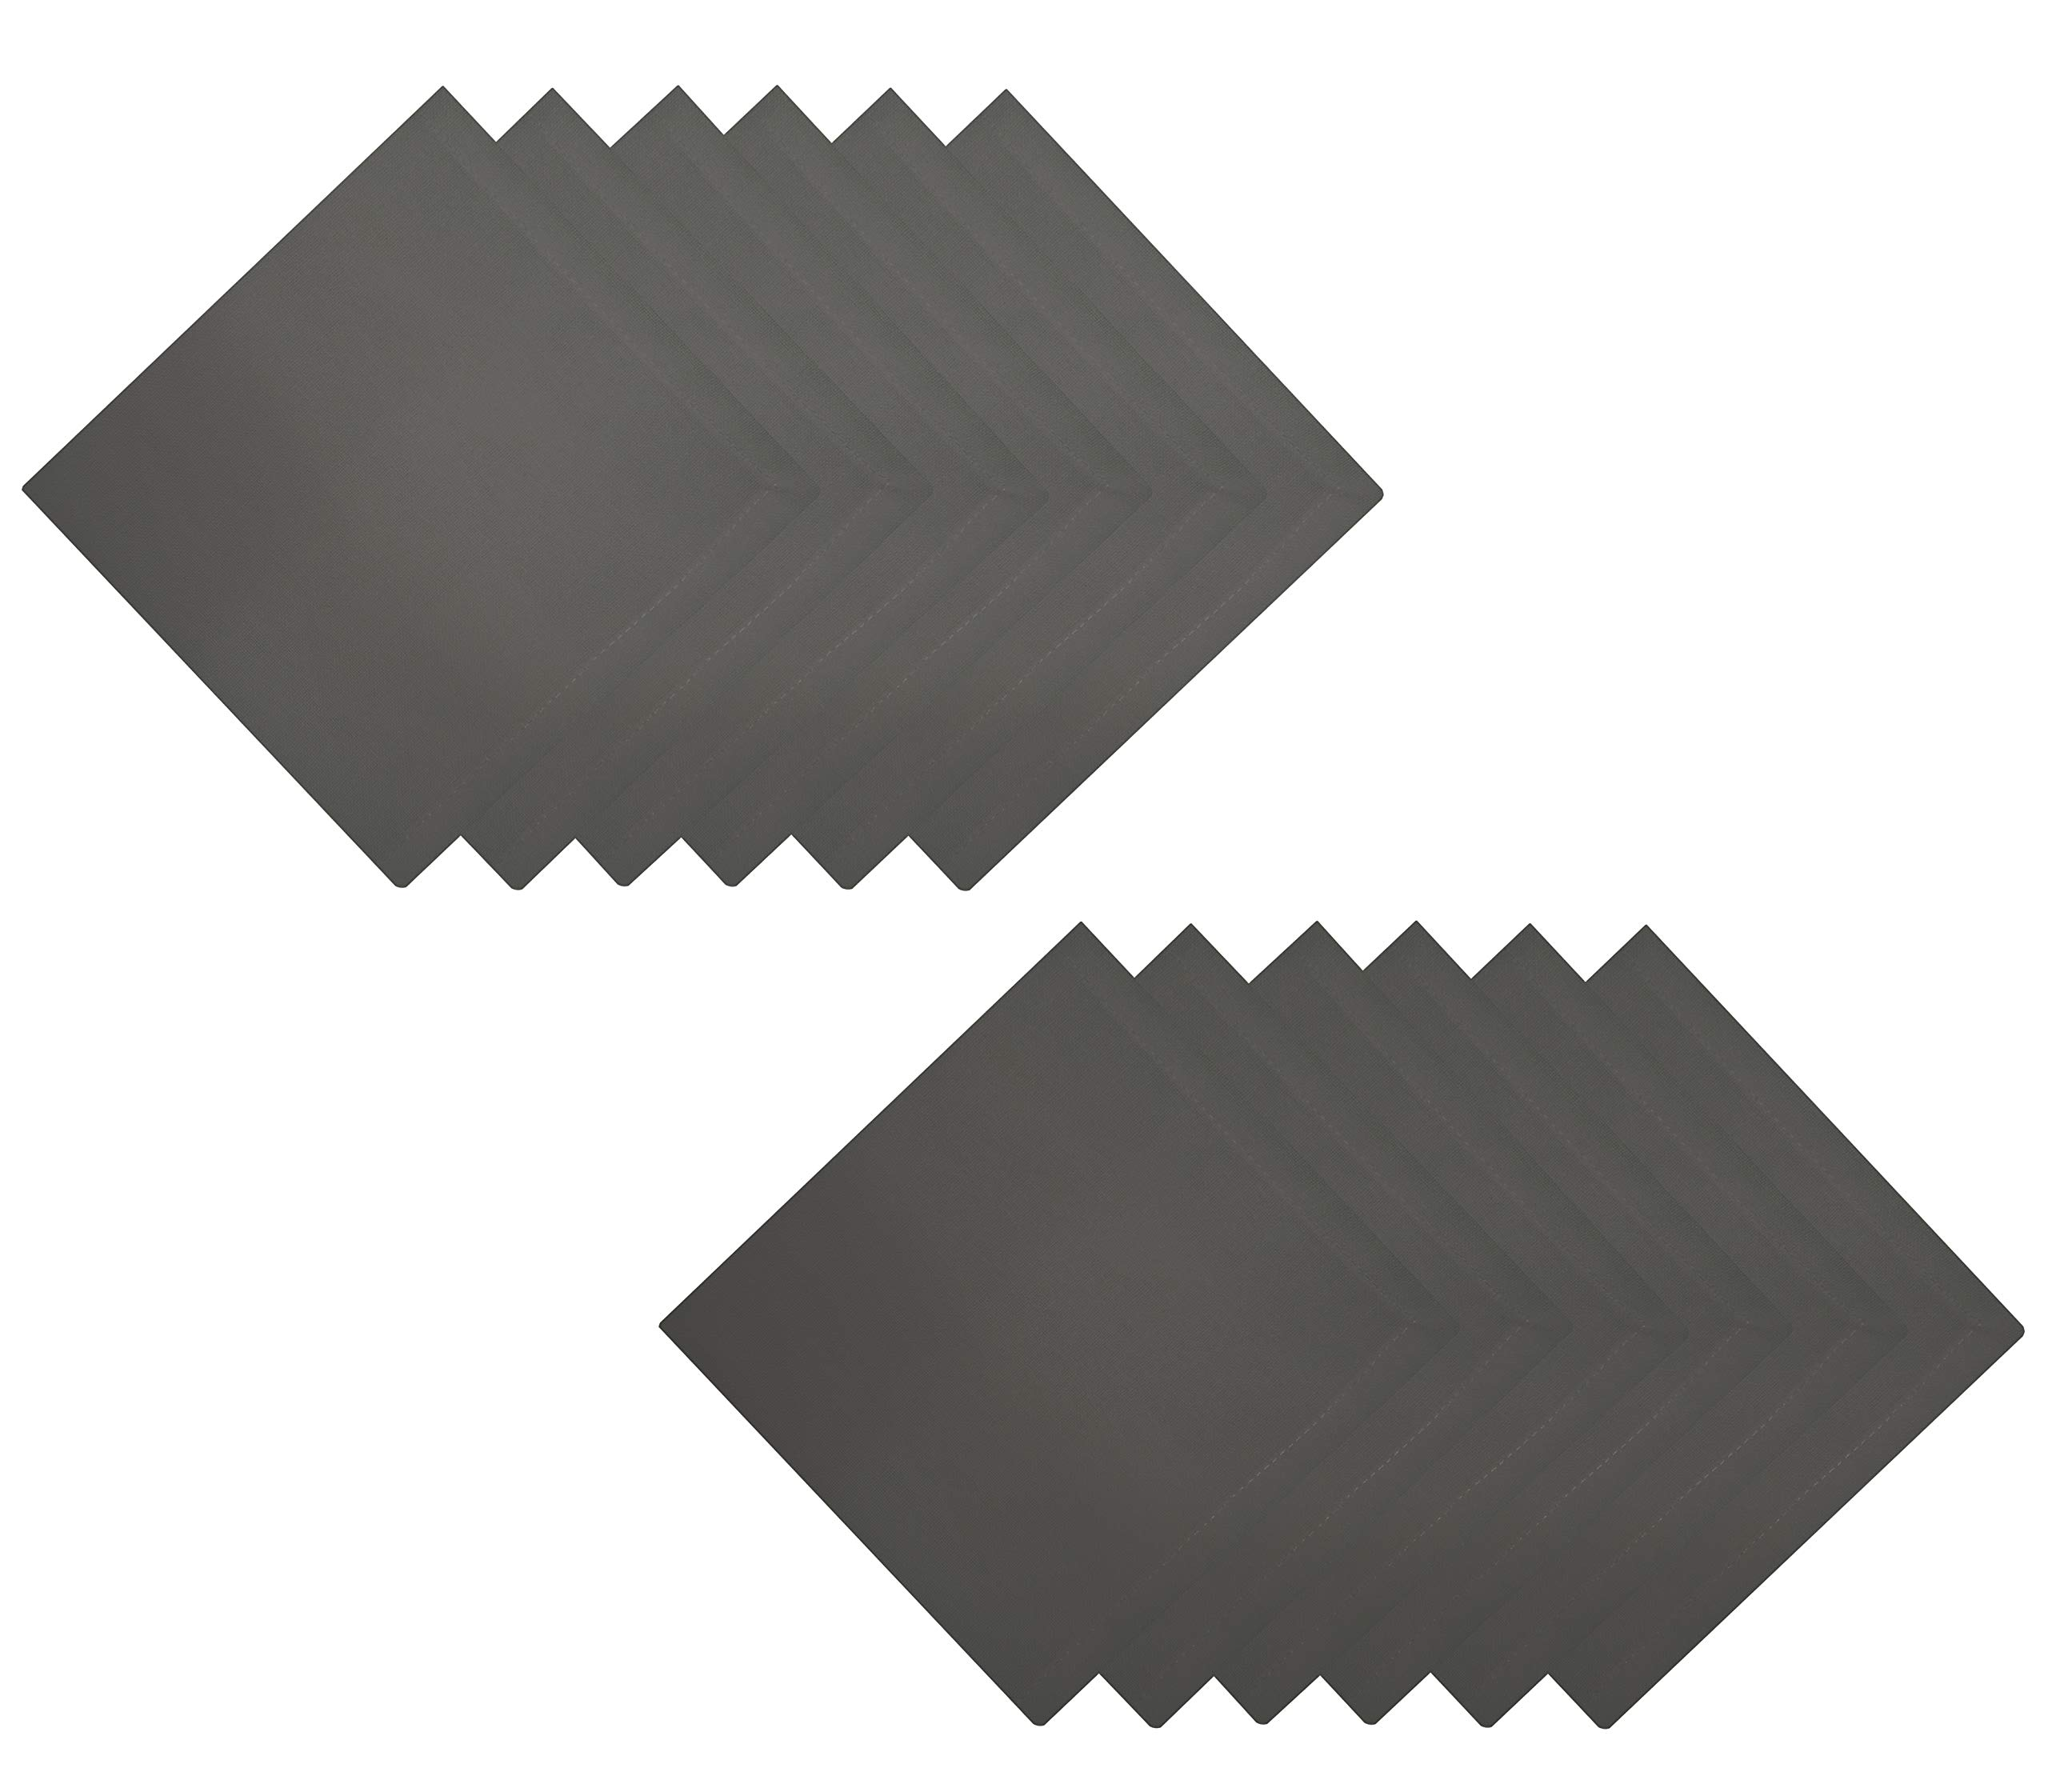 Tiny Break Cloth Napkins 17 x 17 inch - 100% Cotton - Soft Comfortable - Ideal Events Regular Home Use - Graphite Grey - 12 Pack